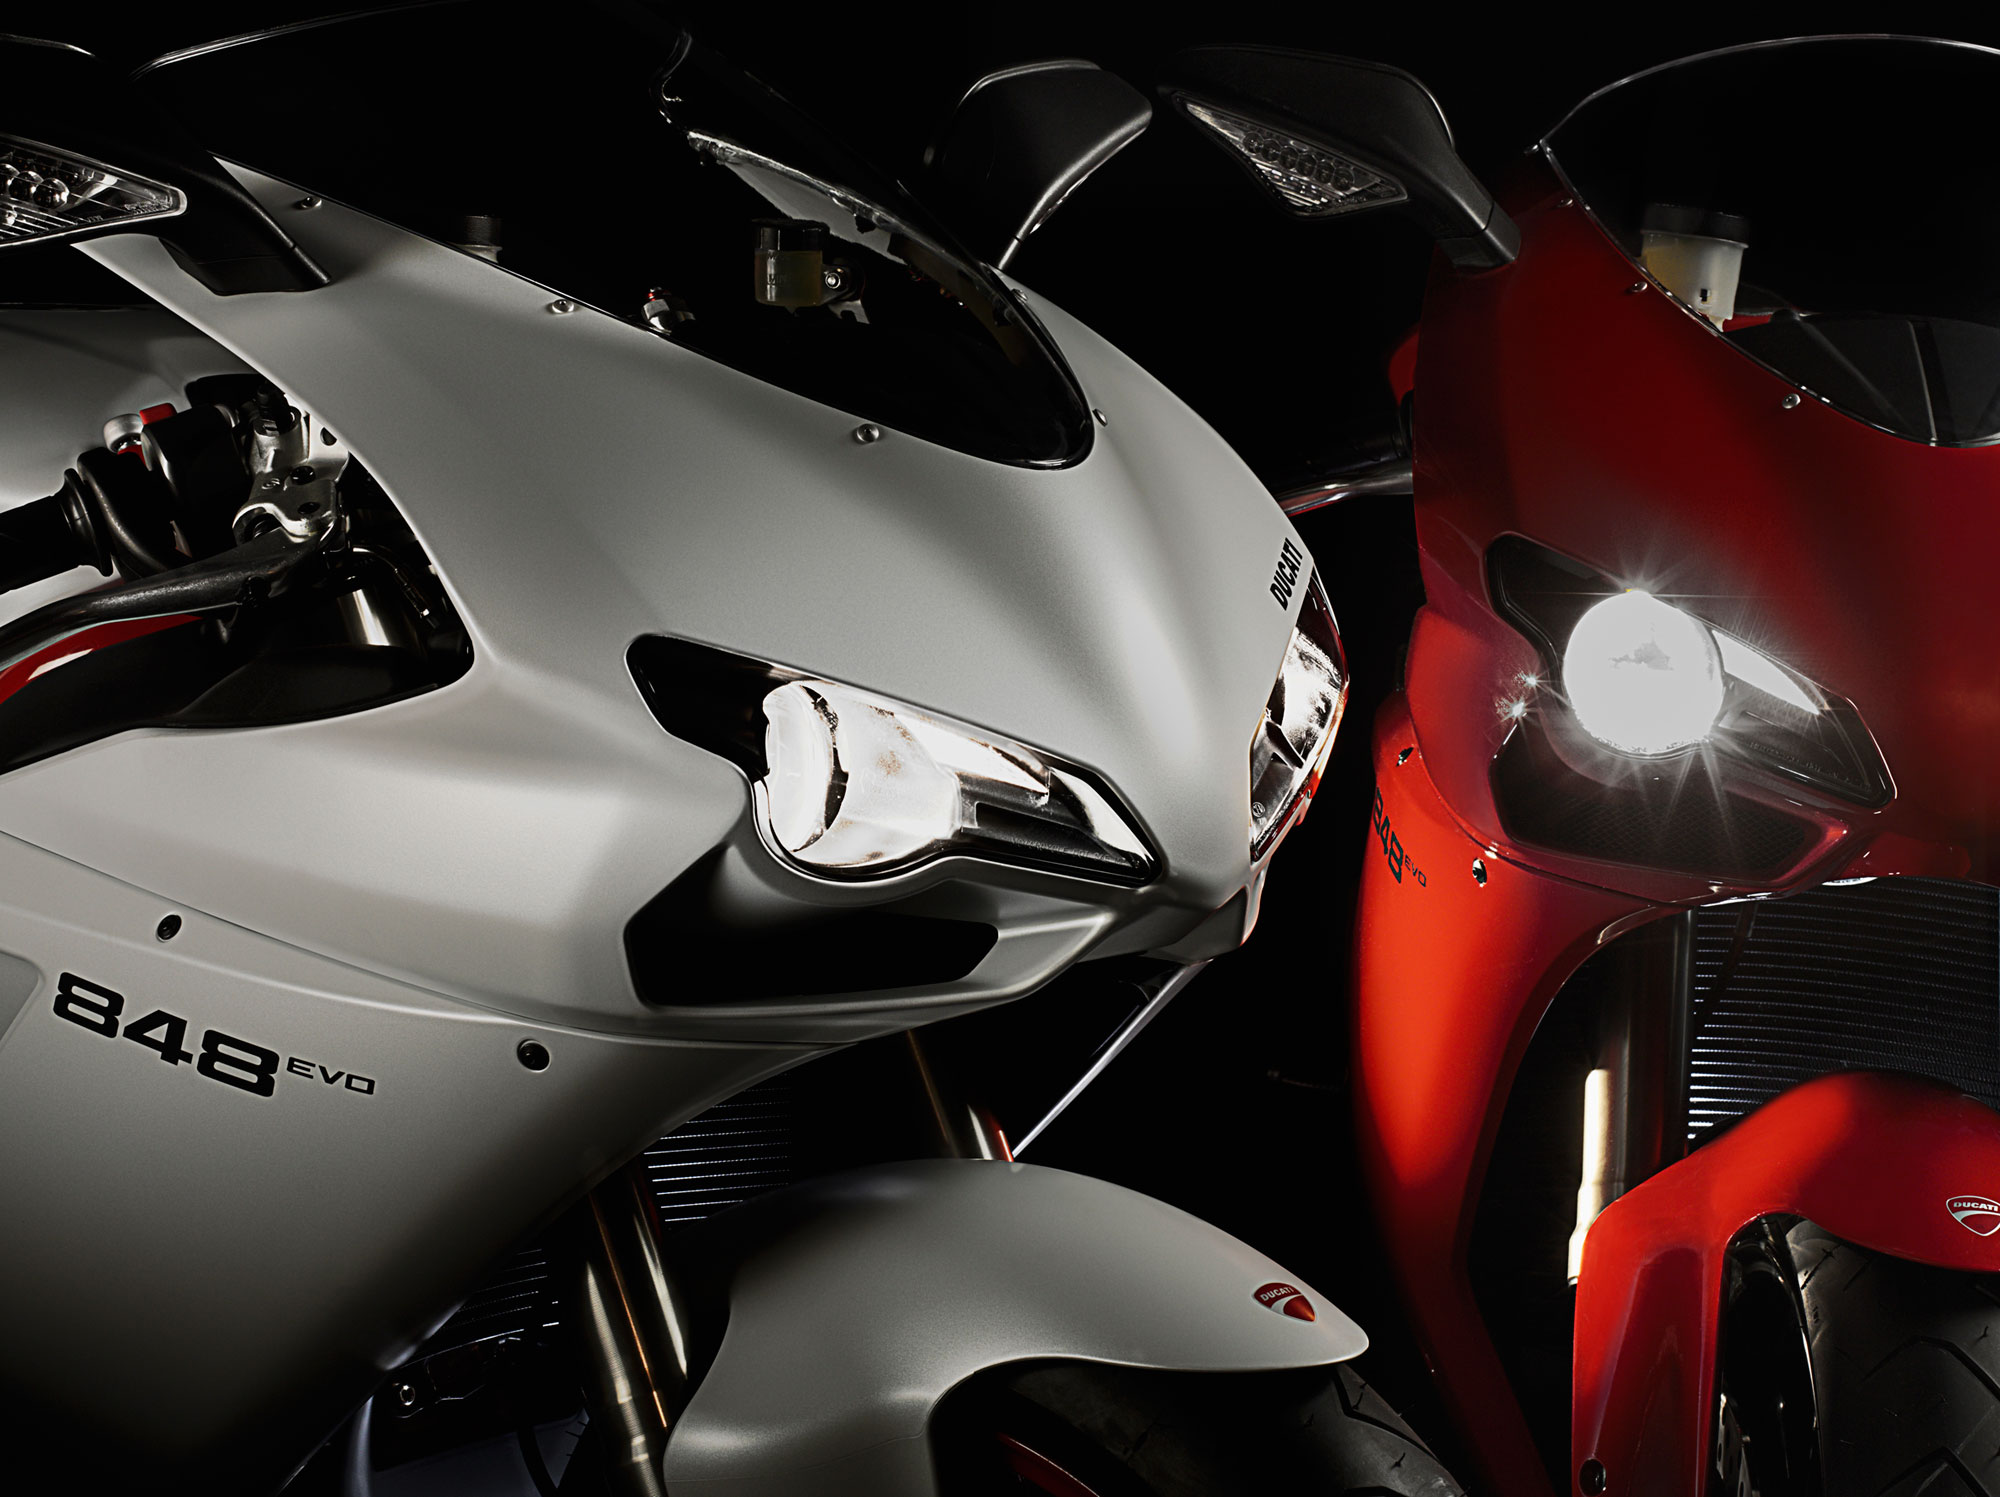 2013 Ducati Superbike 848 EVO f wallpaper | 2000x1497 ...